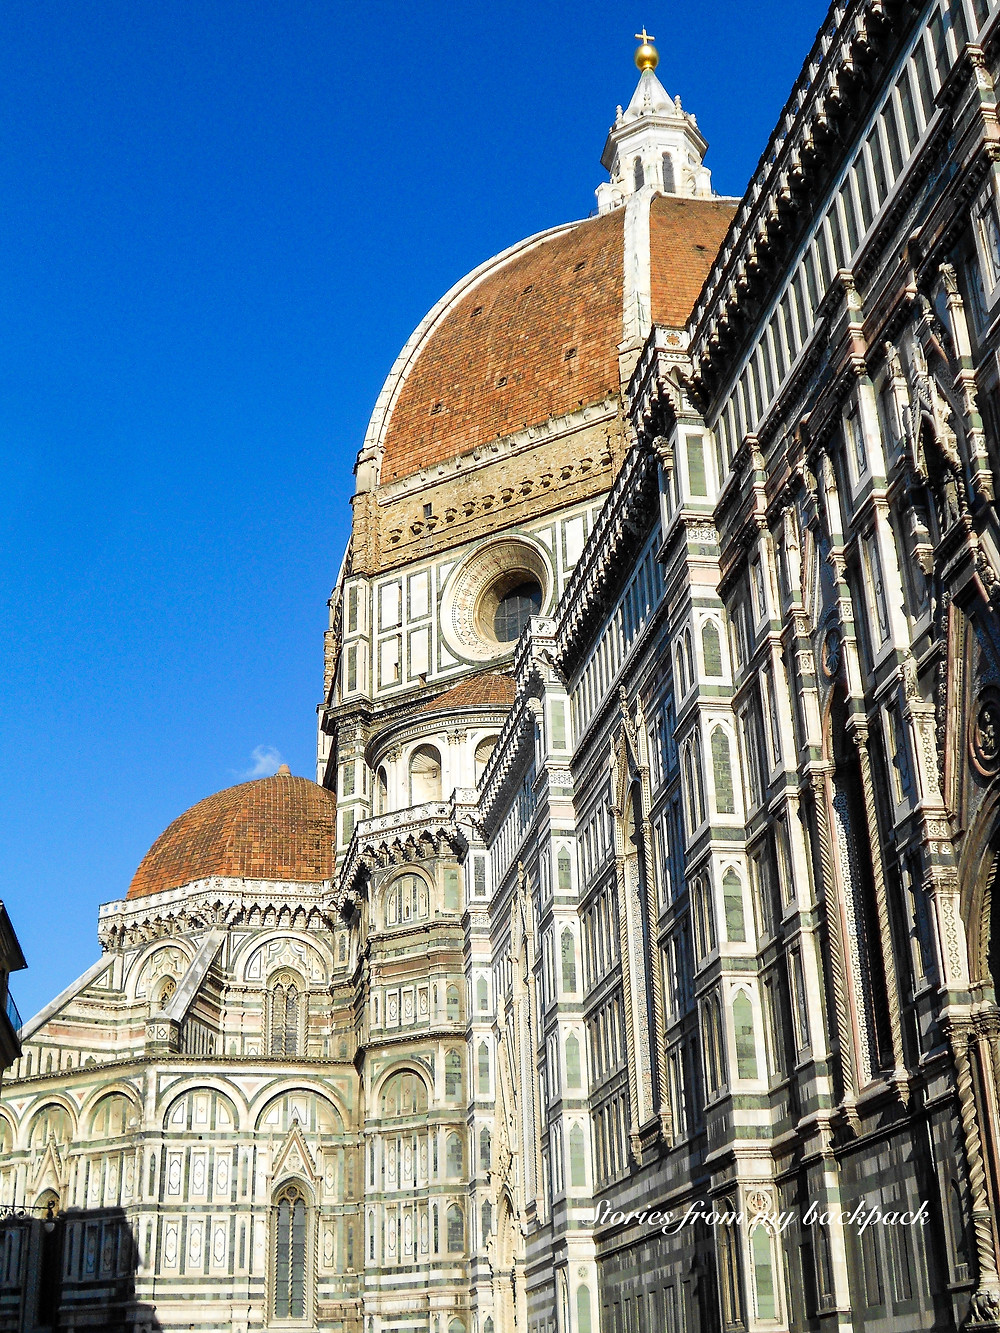 Brunelleschi's dome, Best views in Florence, best sunset in Florence, Italy Bucket list, Offbeat guide Florence